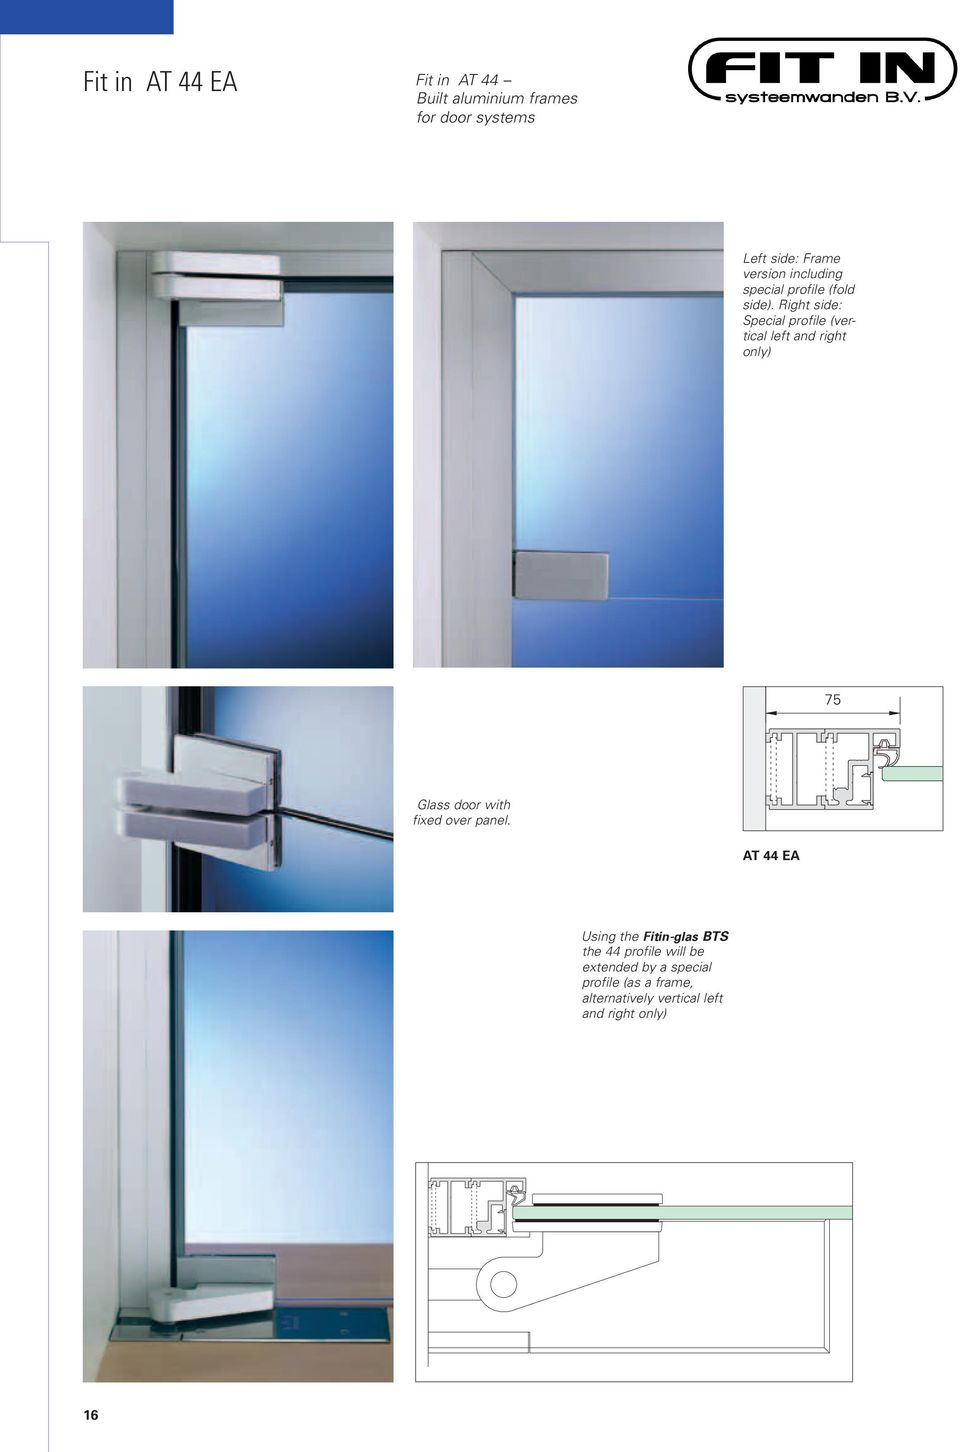 Right side: Special profile (vertical left and right only) 75 Glass door with fixed over